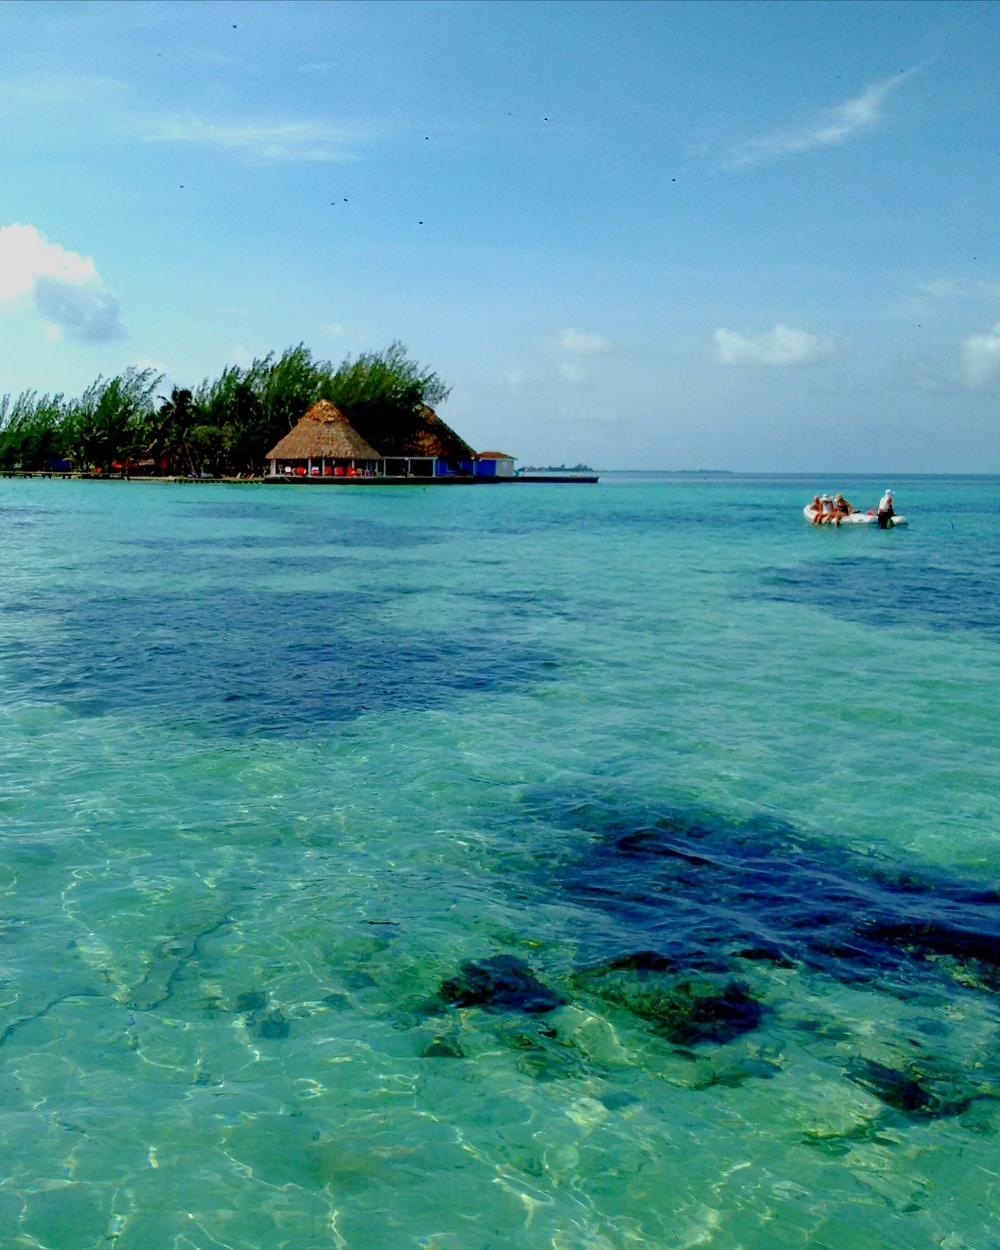 The unique resorts on Belize's remote outer cayes offer the perfect island escape.